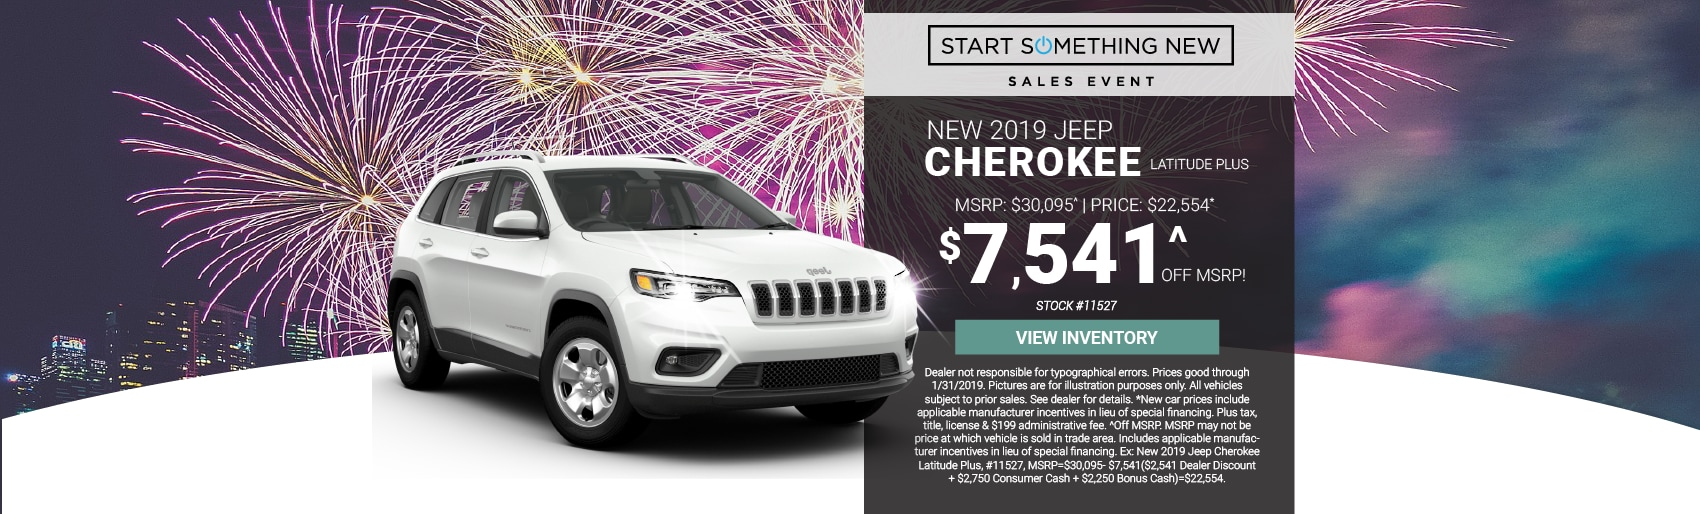 Jeep Cherokee SUV Sale St Petes Lease Deals